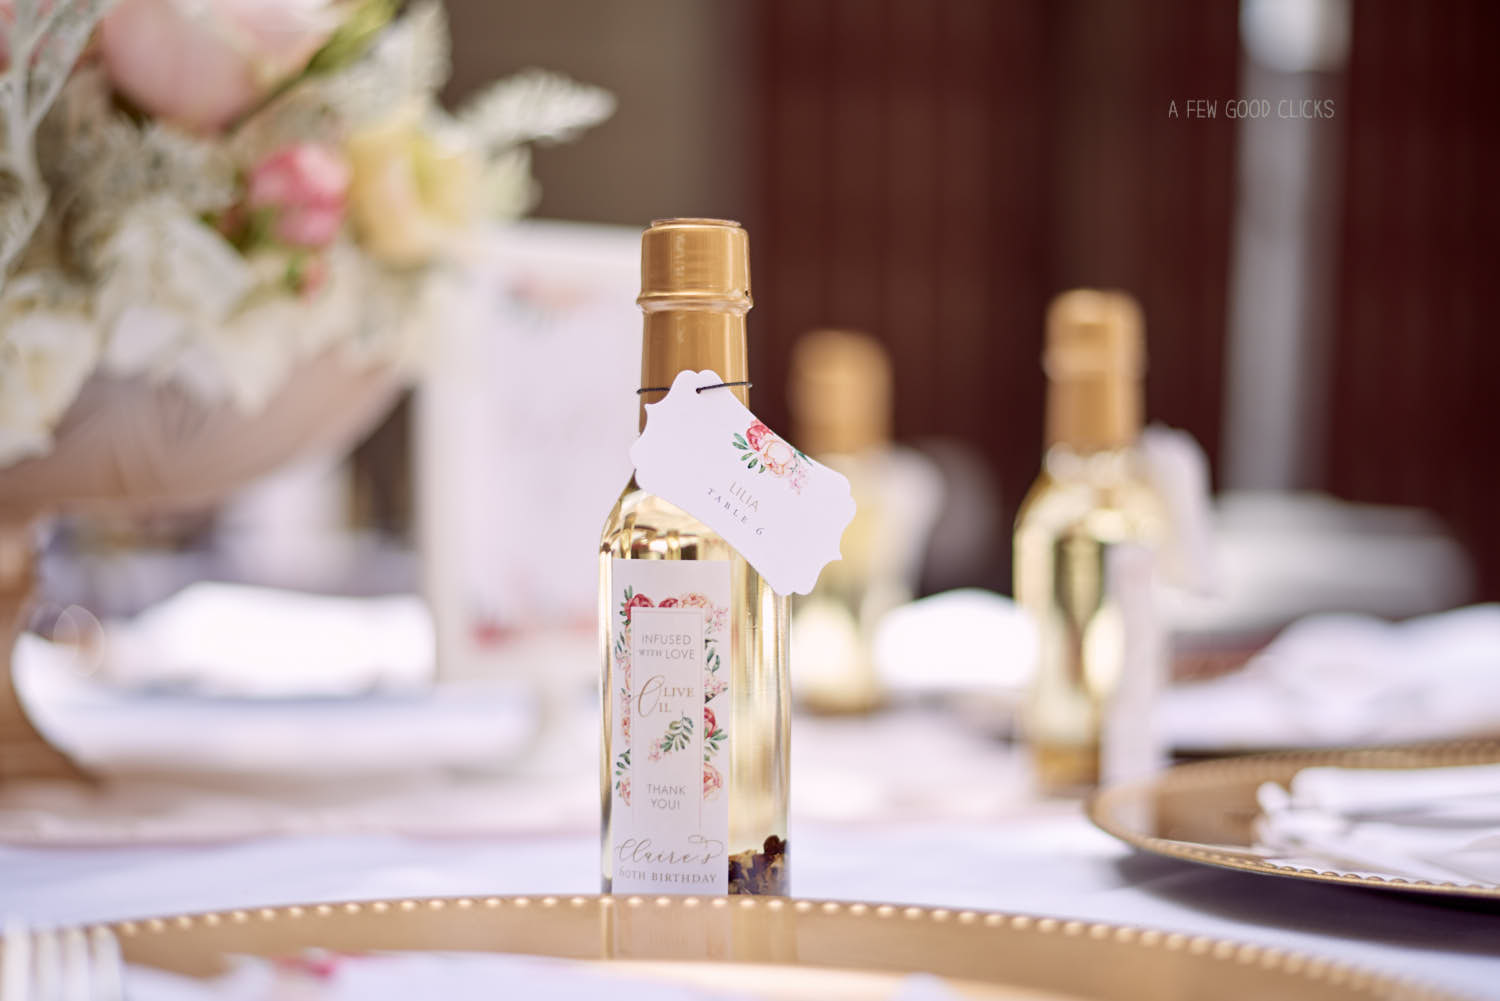 Personalise your party favours - Olive oil bottles infused with Love:)